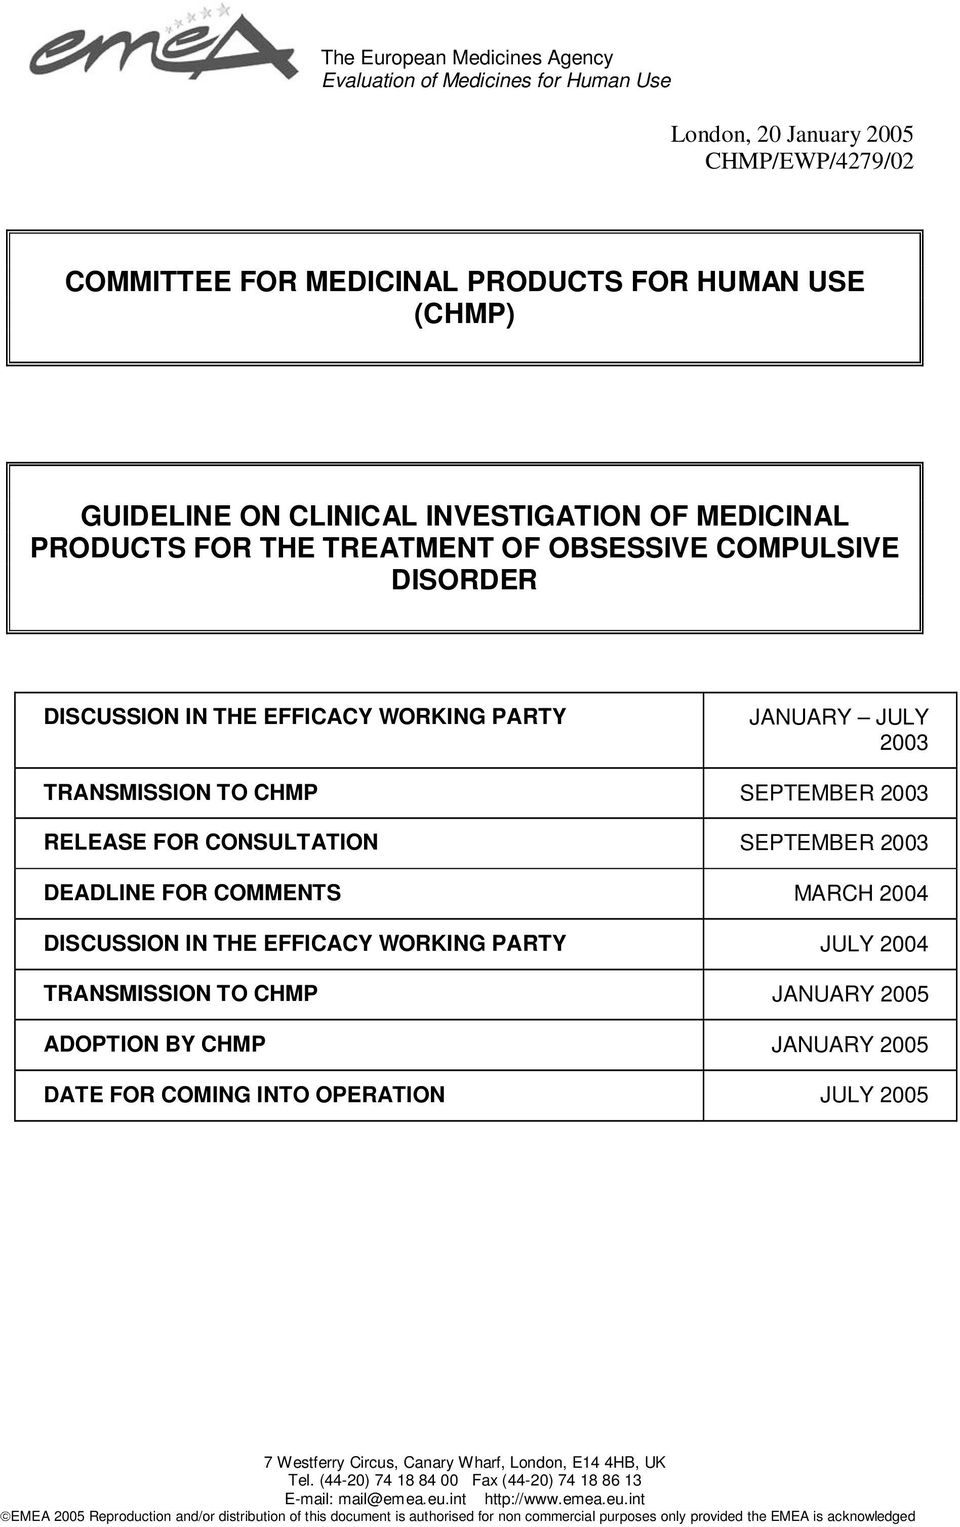 DEADLINE FOR COMMENTS MARCH 2004 DISCUSSION IN THE EFFICACY WORKING PARTY JULY 2004 TRANSMISSION TO CHMP JANUARY 2005 ADOPTION BY CHMP JANUARY 2005 DATE FOR COMING INTO OPERATION JULY 2005 7